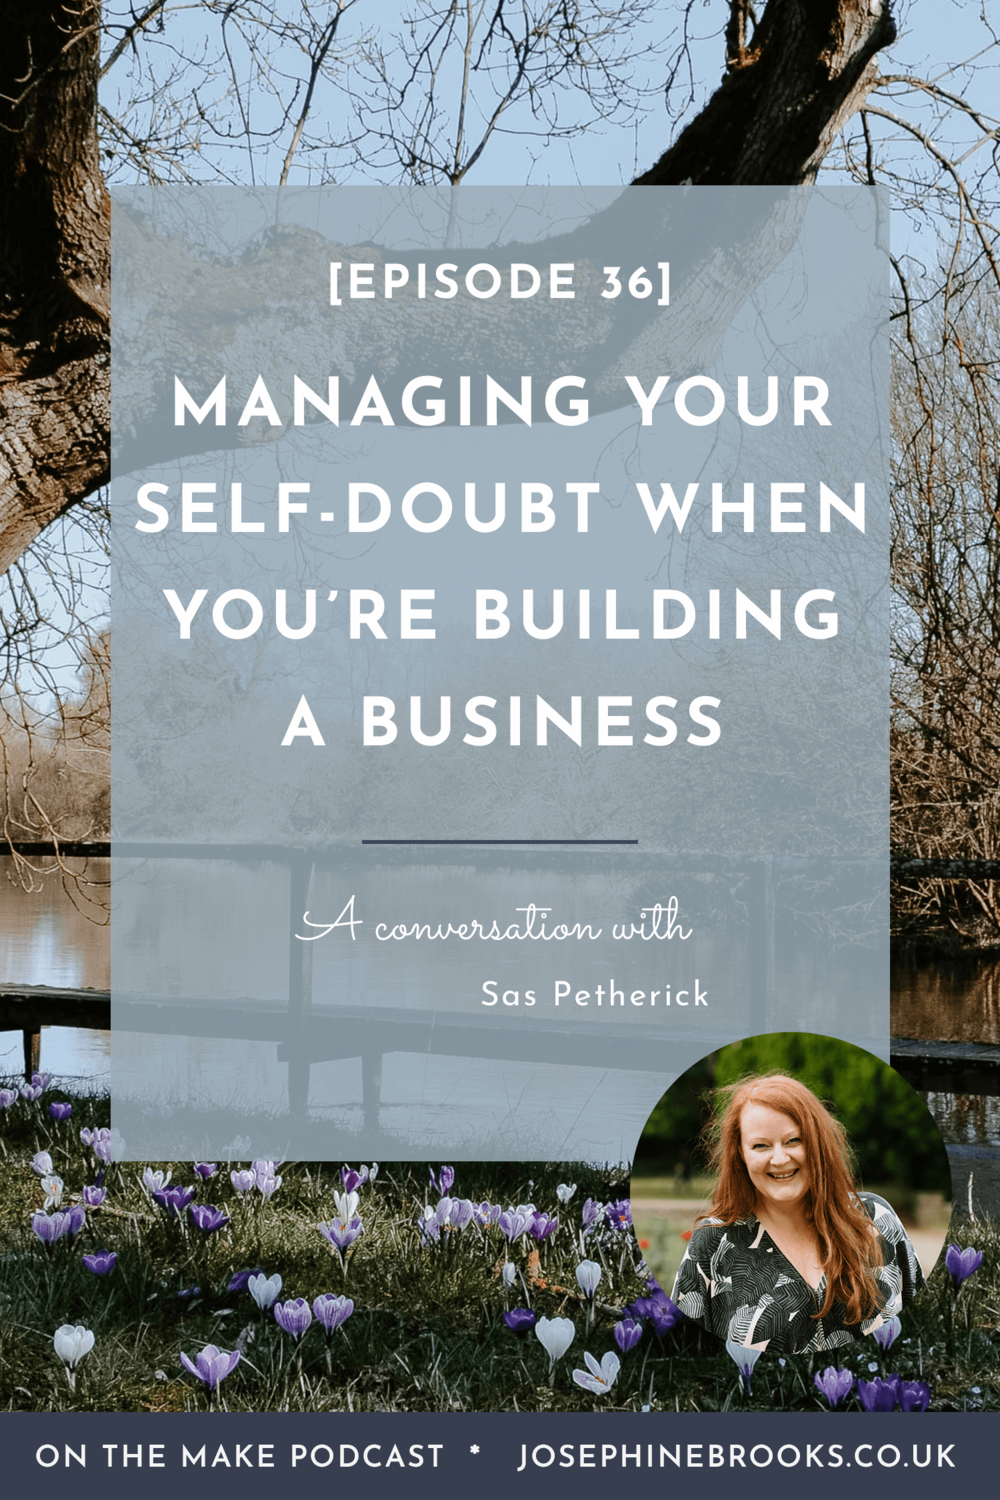 Managing your self-doubt when you're building a business   On the Make podcast hosted by Josephine Brooks, episode 36 with Sas Petherick